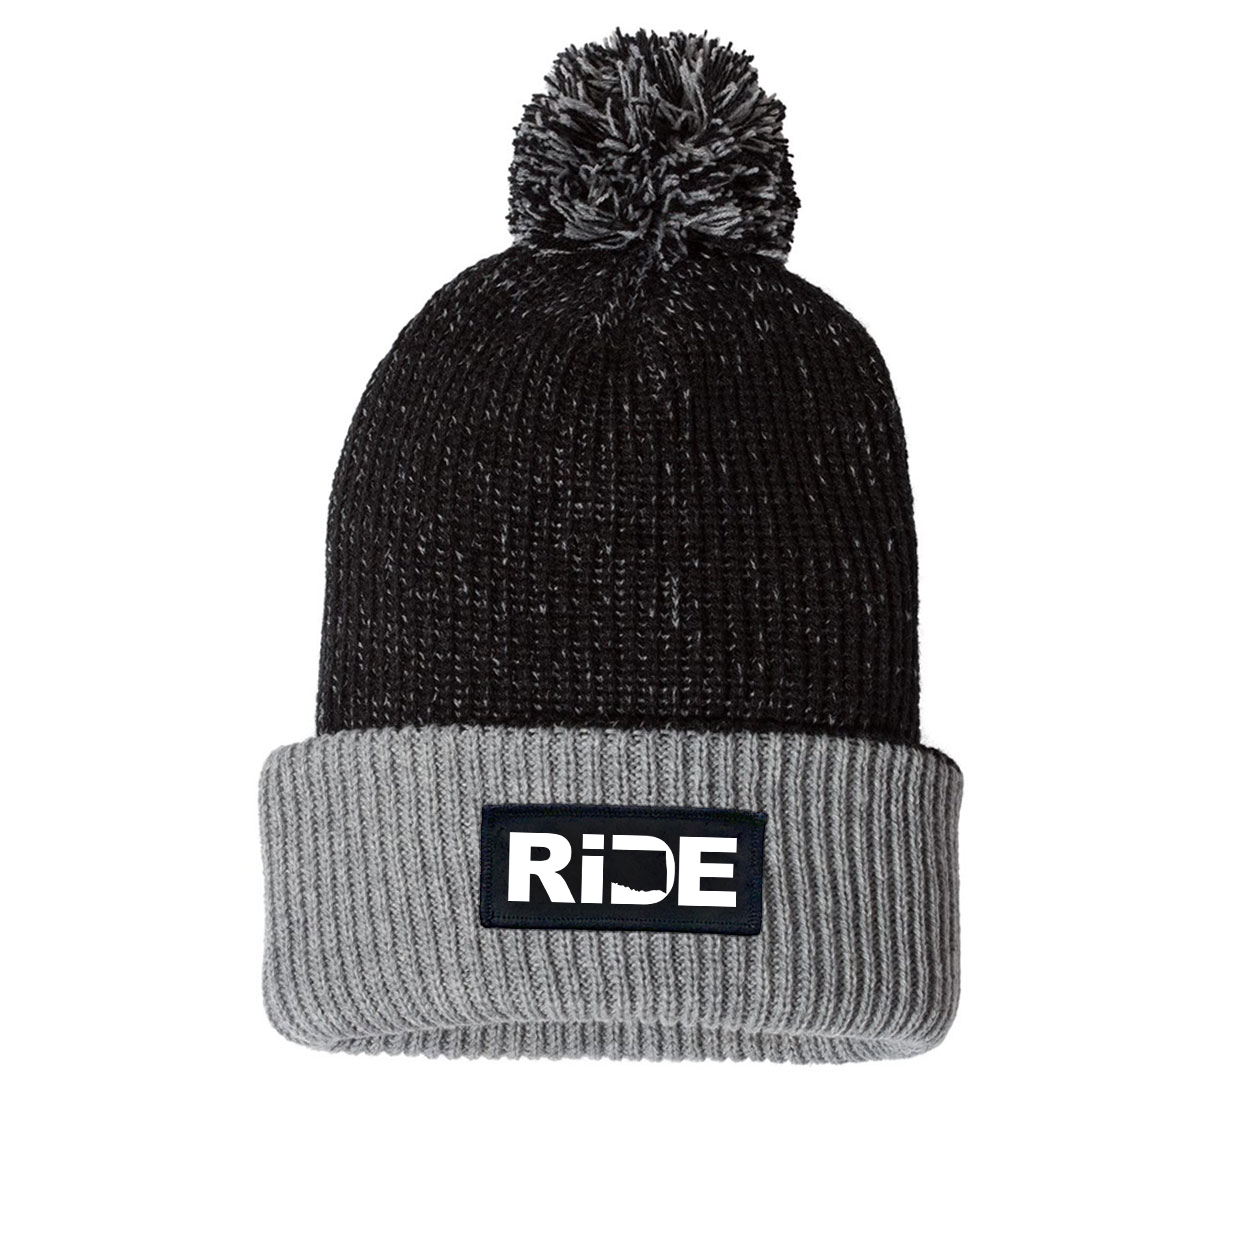 Ride Oklahoma Night Out Woven Patch Roll Up Pom Knit Beanie Black/Gray (White Logo)